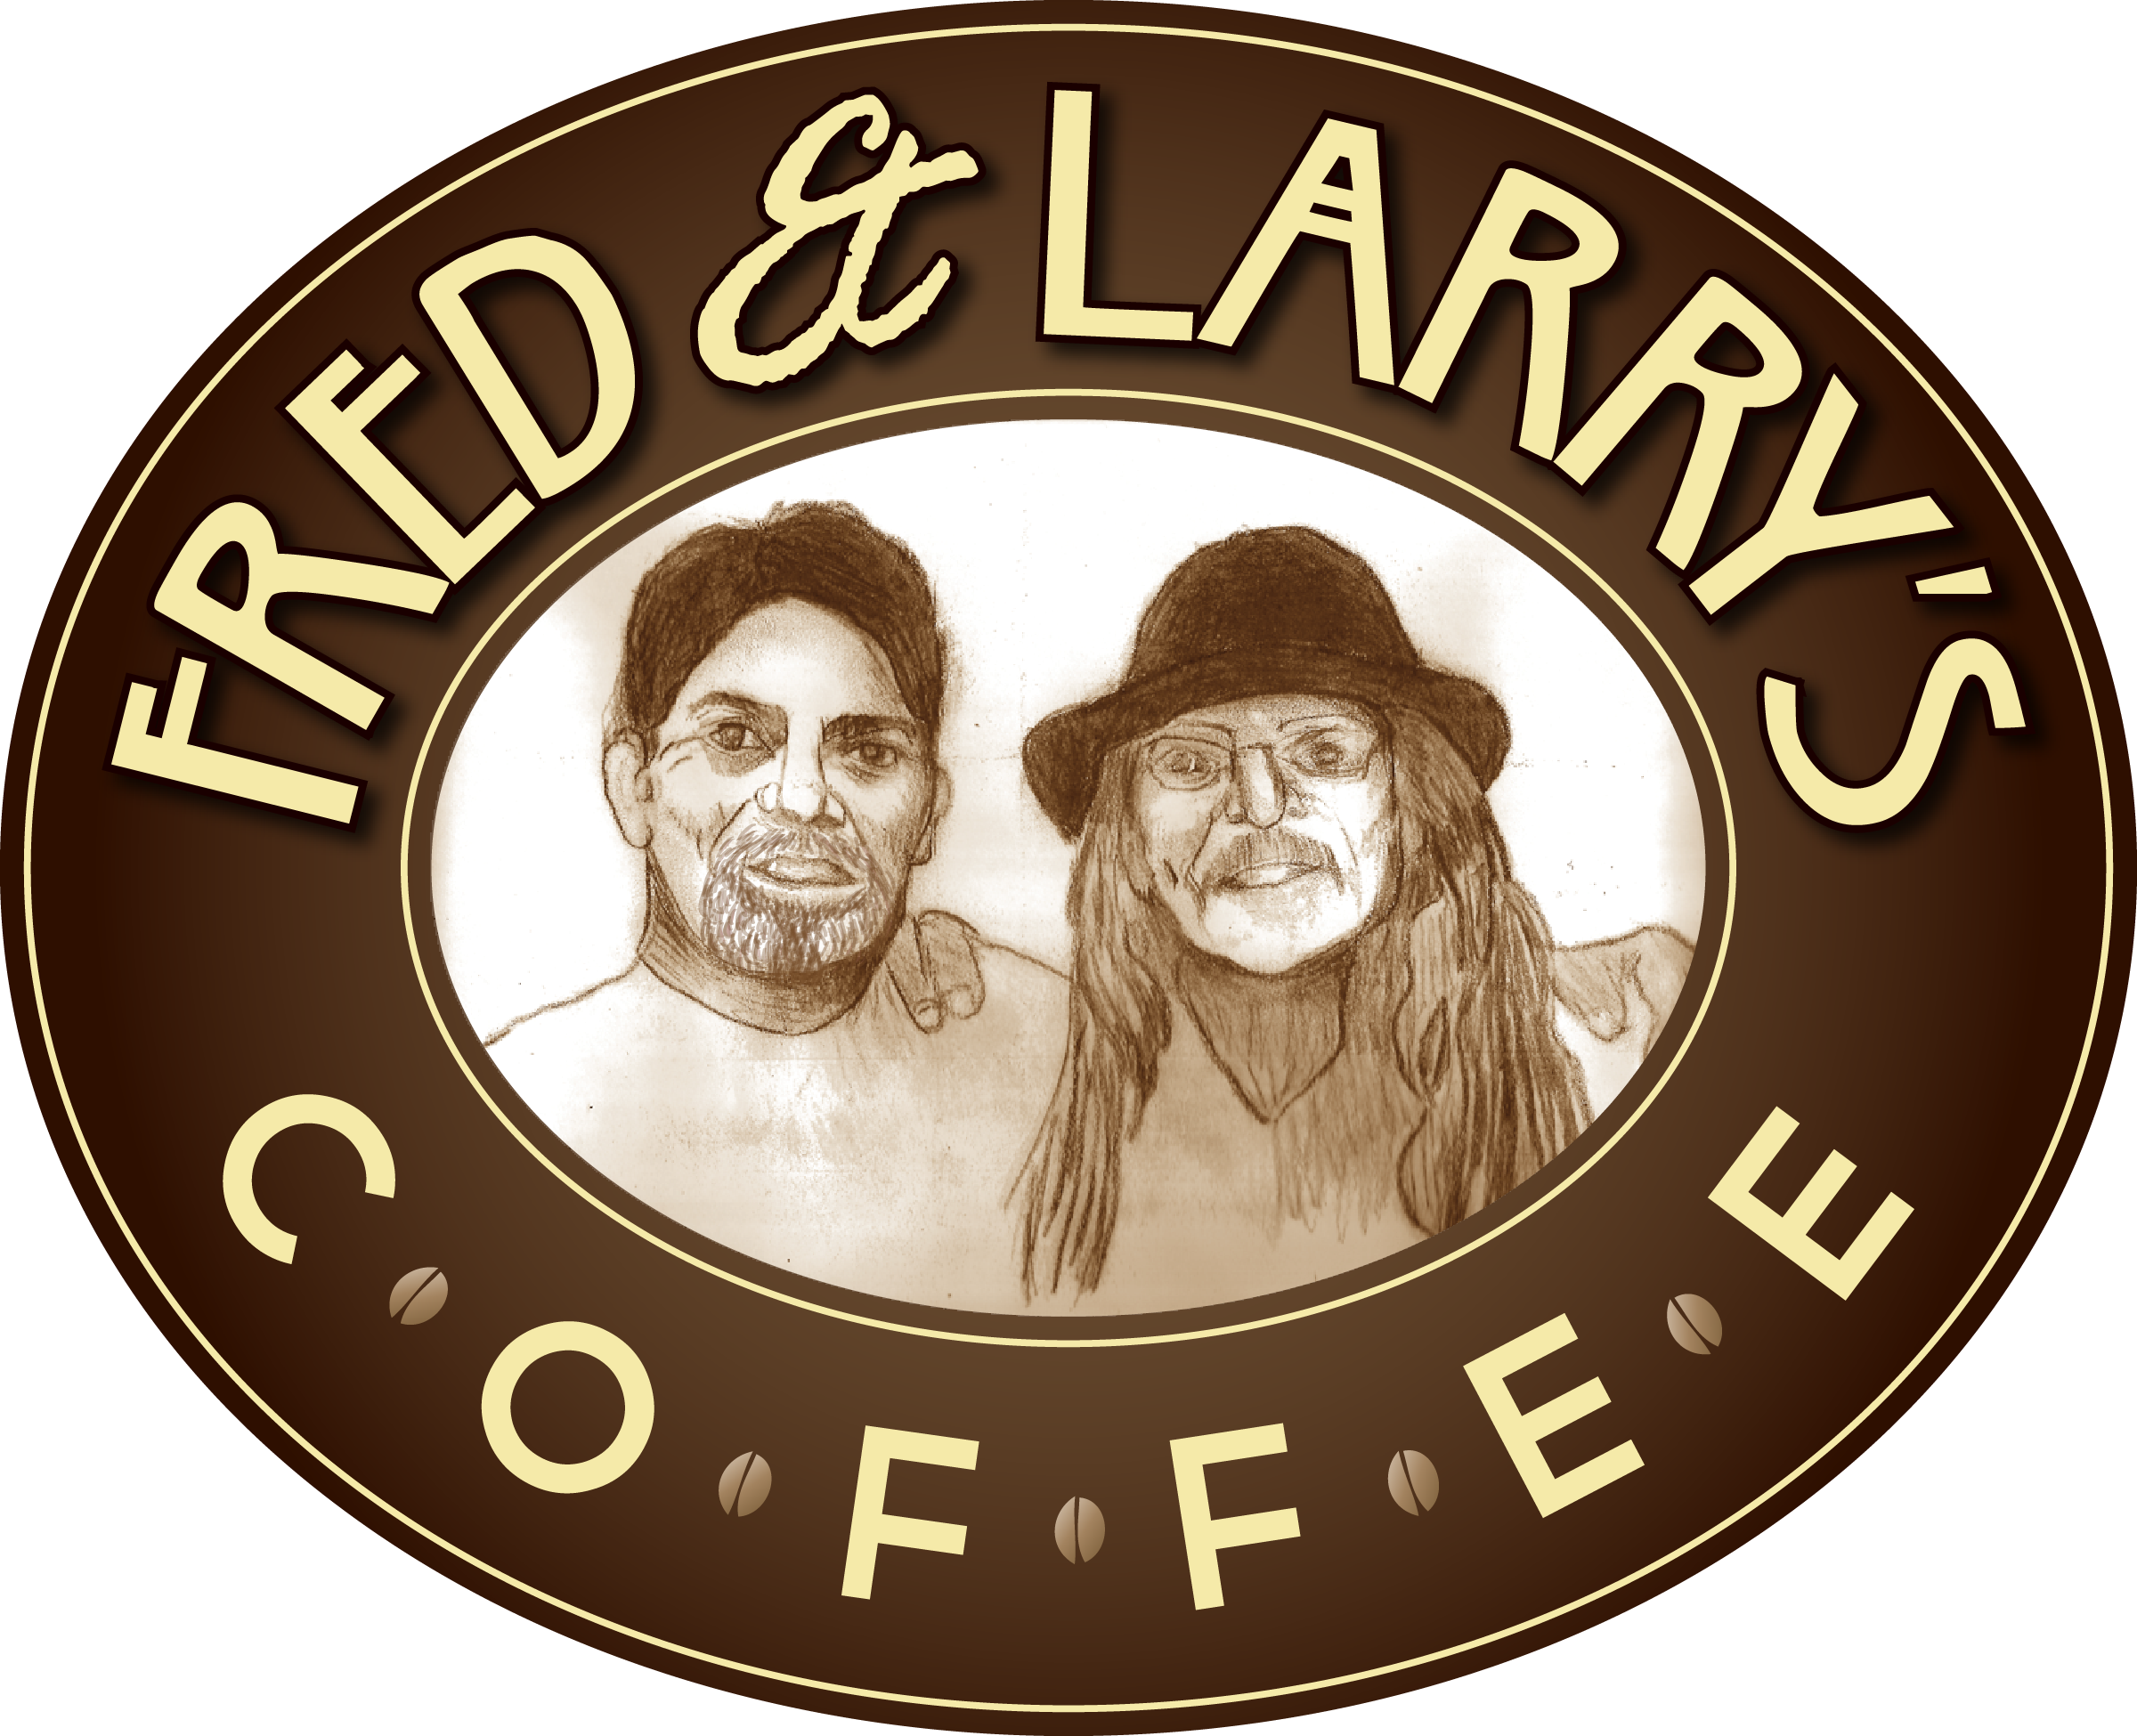 Fred and Larry's Coffee Home